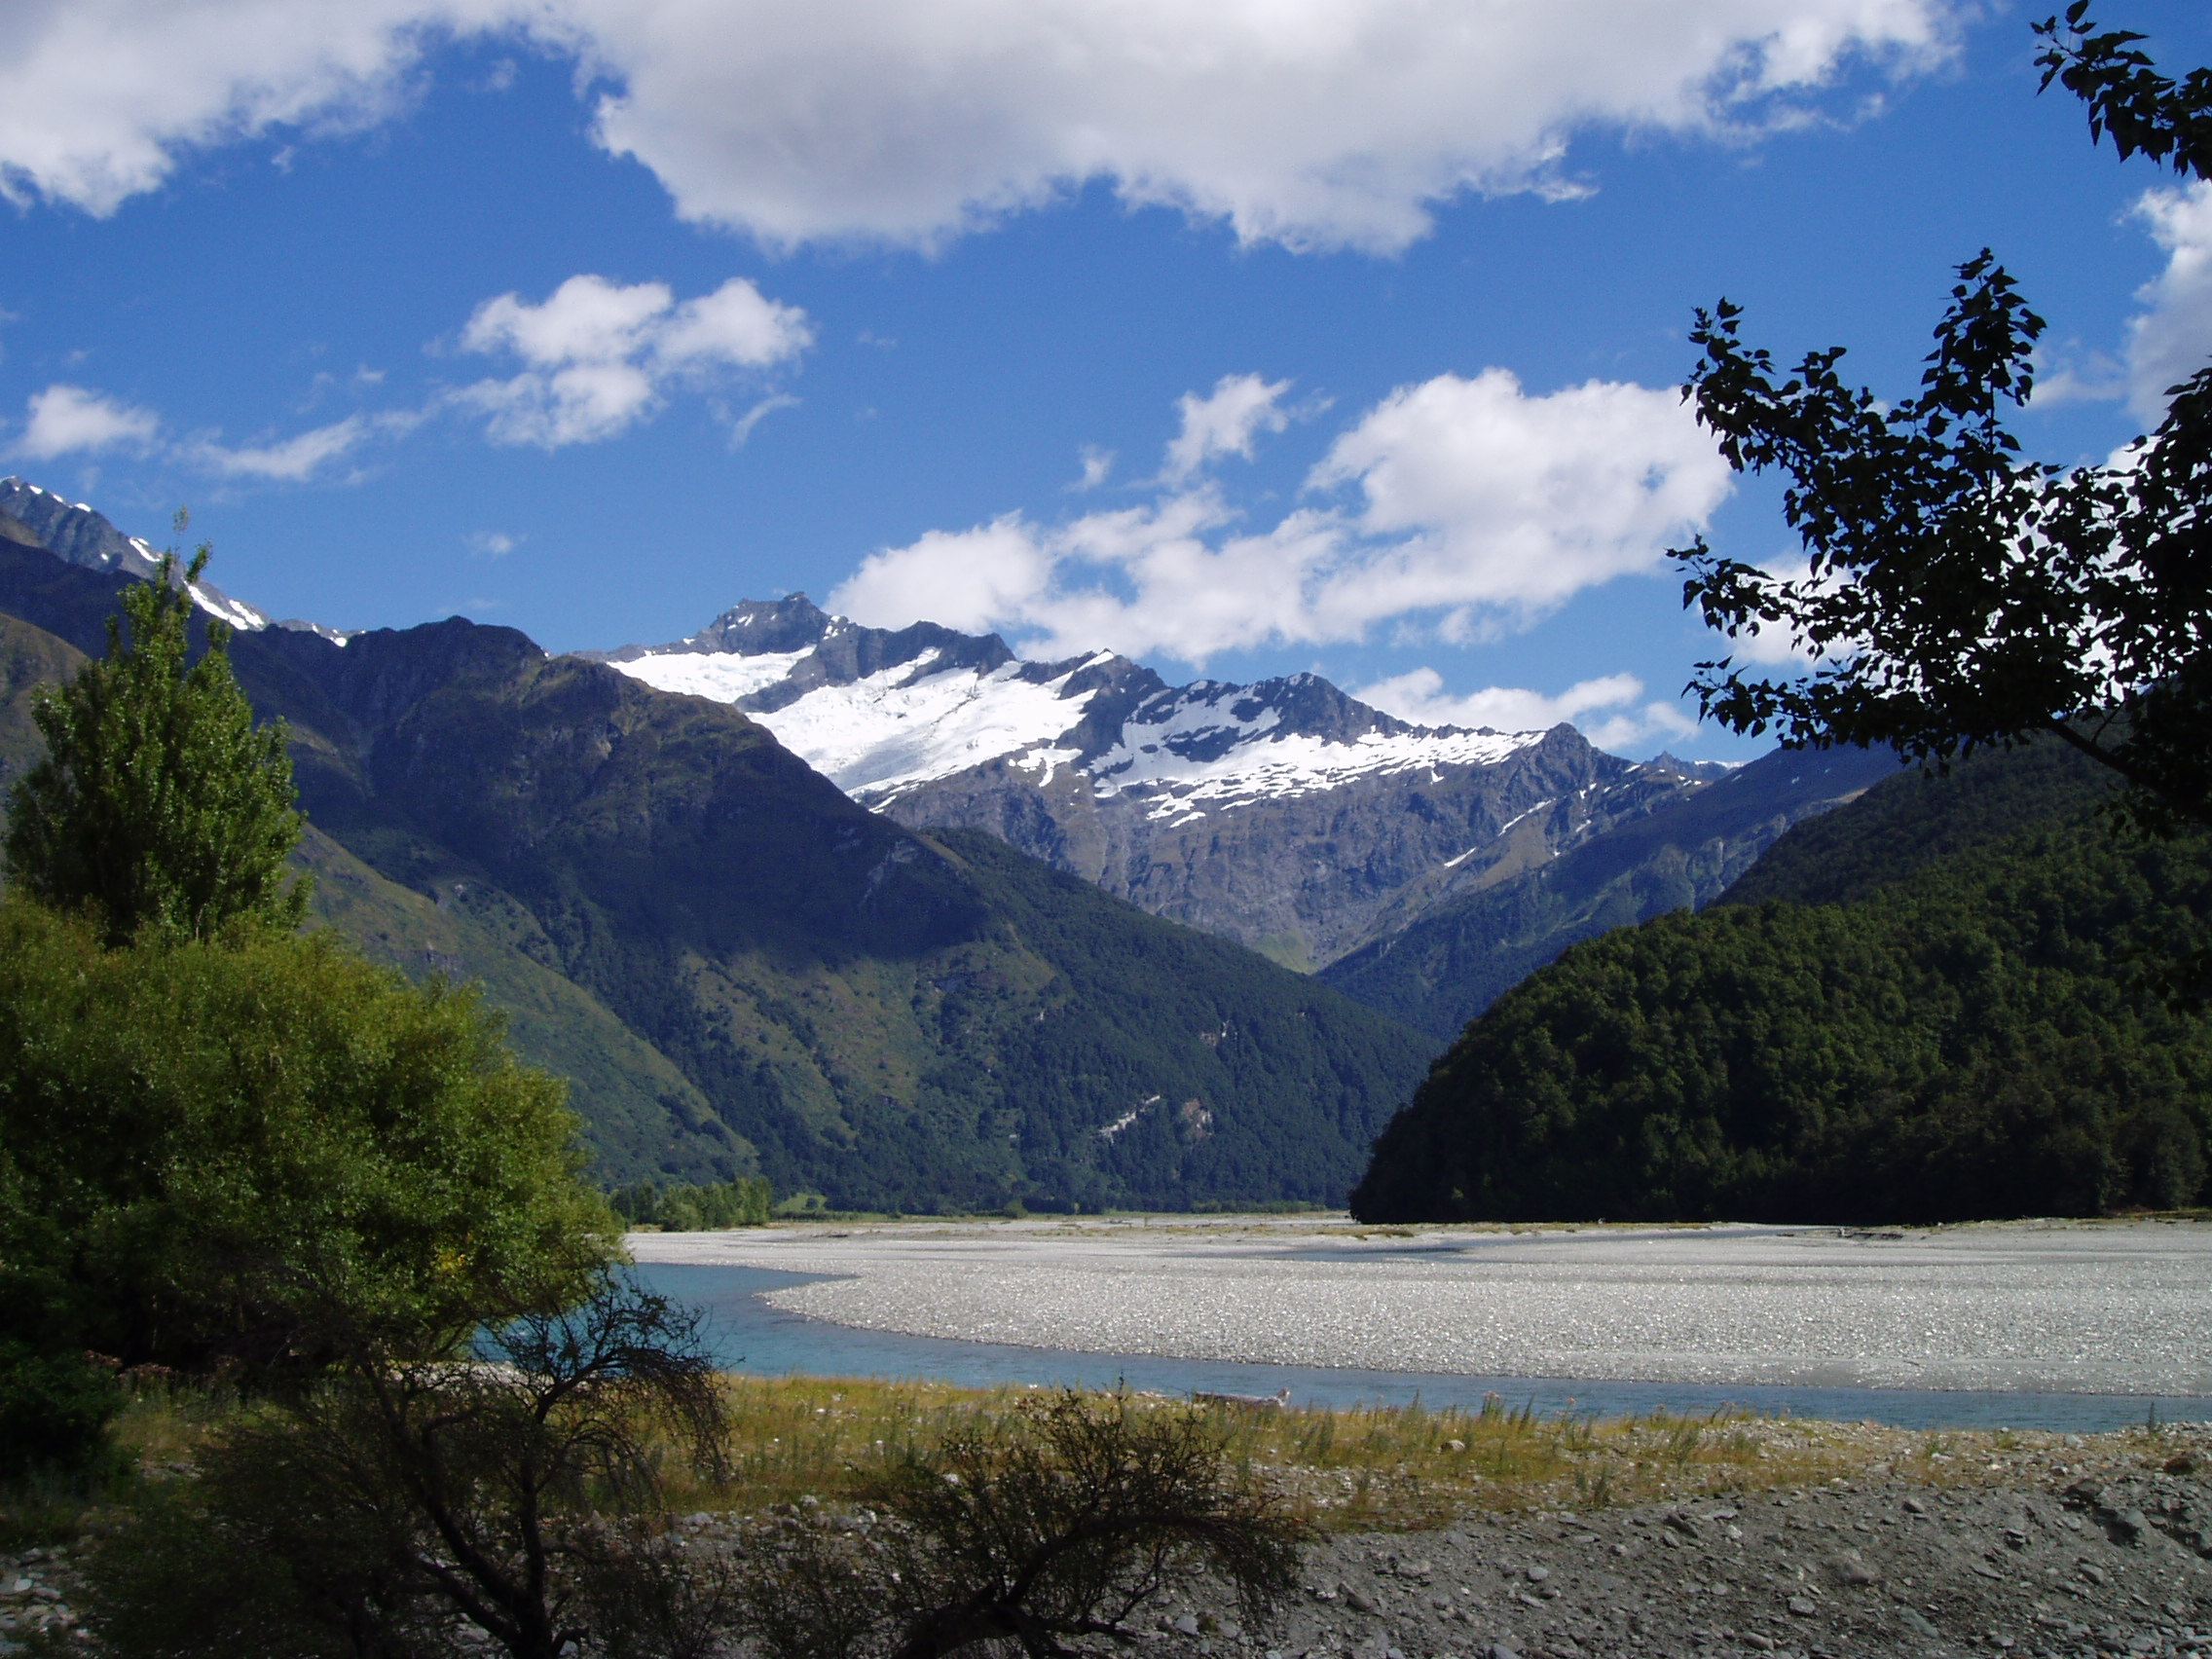 Mount Aspiring National Park.